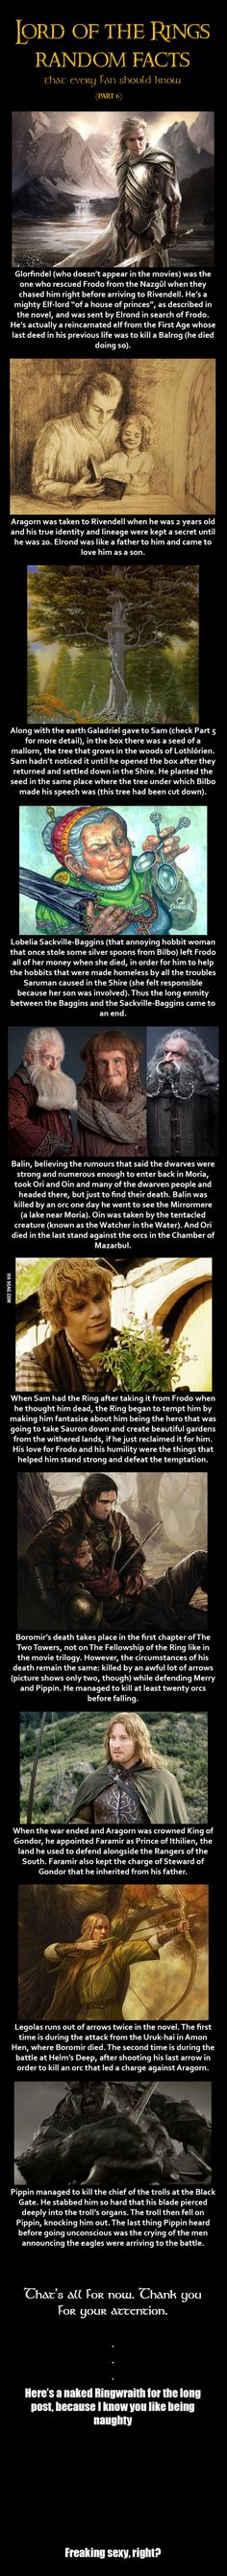 Here are some Lord of the Rings random facts (Part 6) - 9GAG